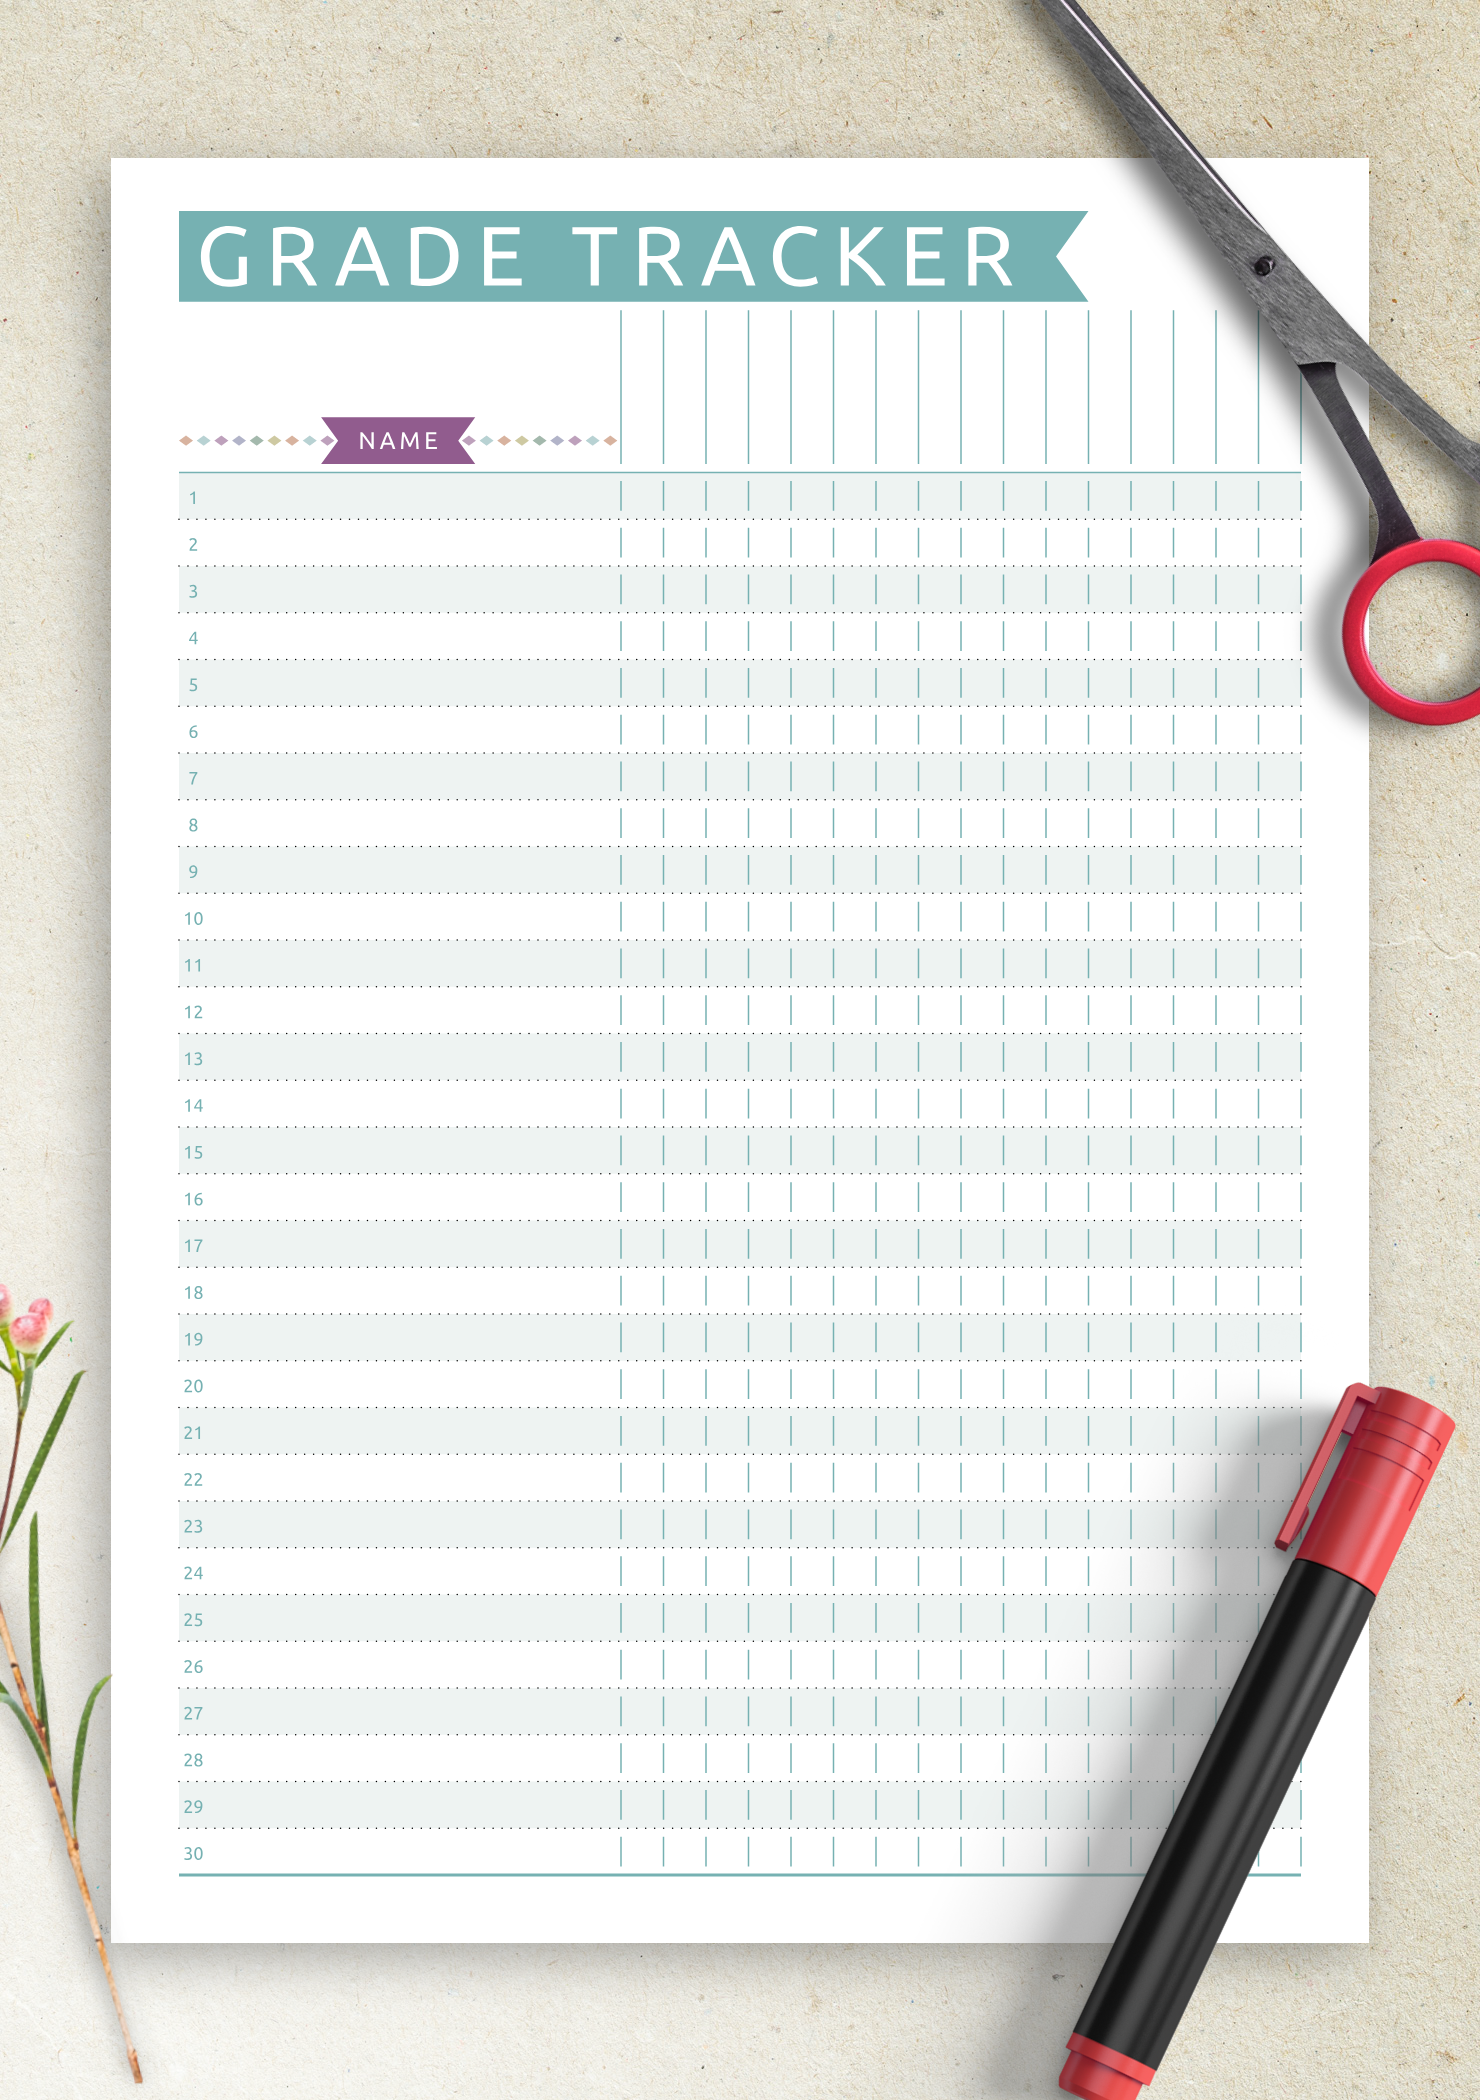 photo regarding Printable Gradebook Pages named Absolutely free Printable Gradebook Template - Everyday Design PDF Obtain